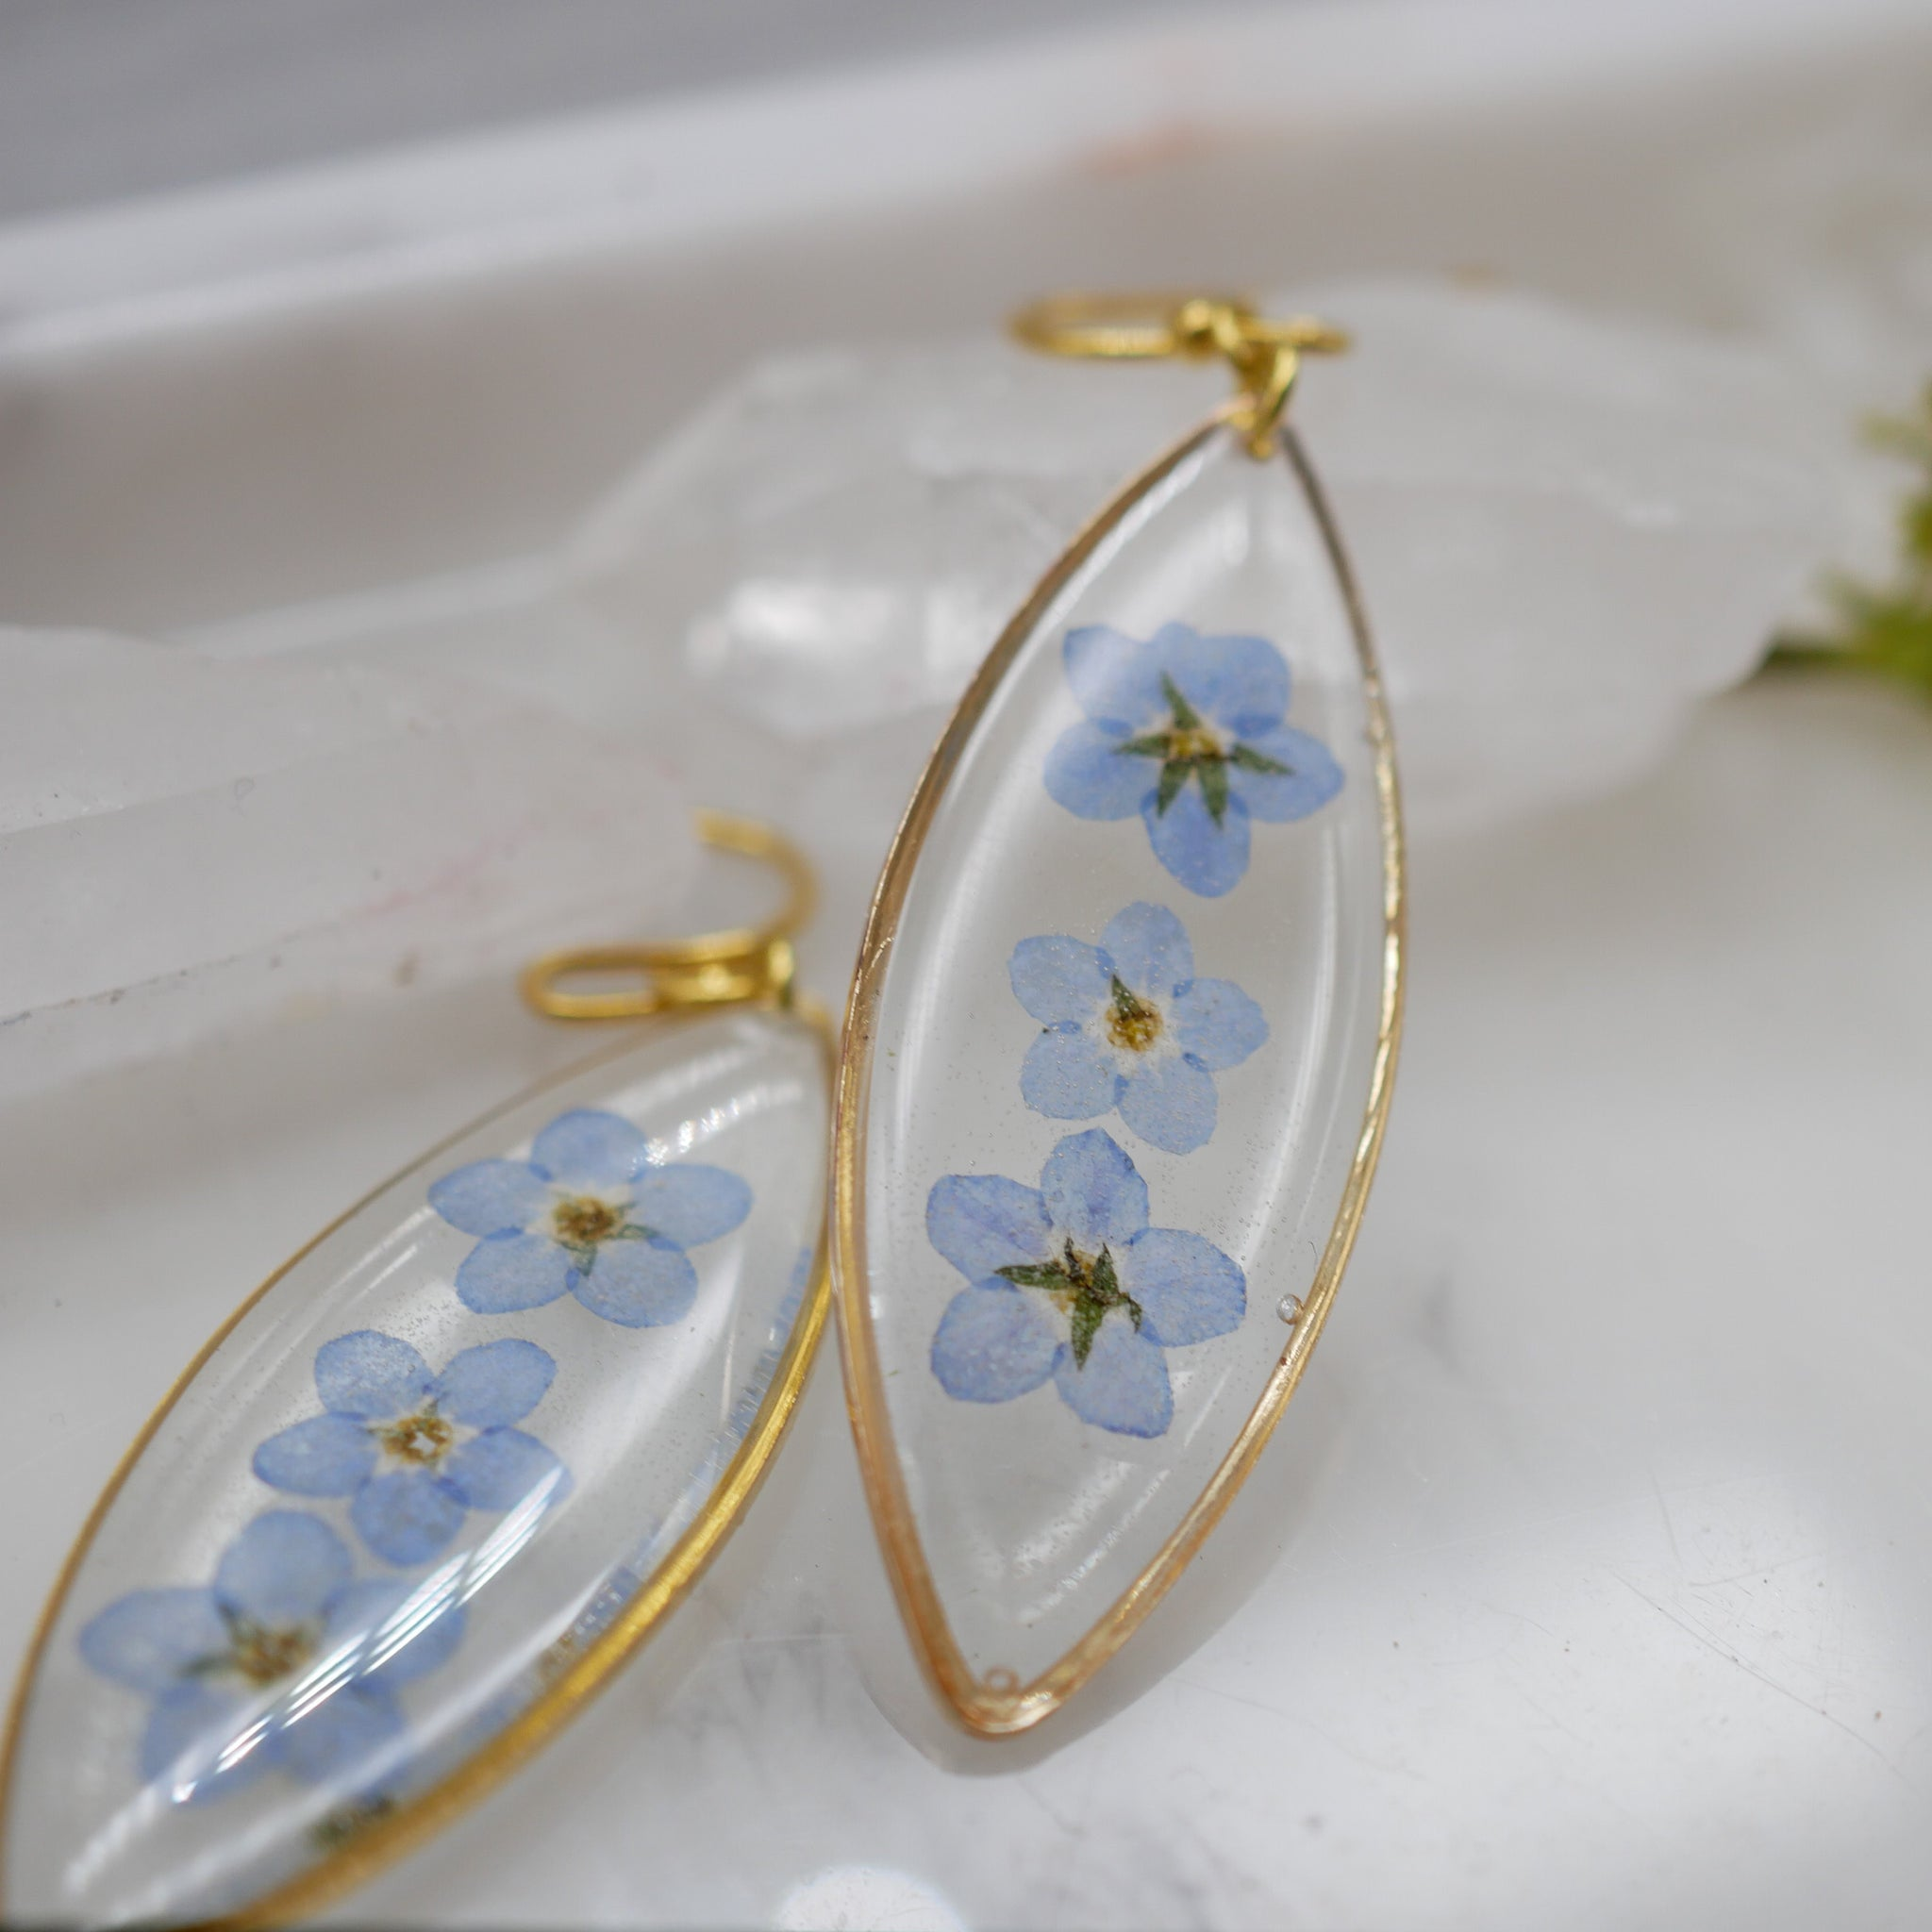 Forget me not ellipse earrings